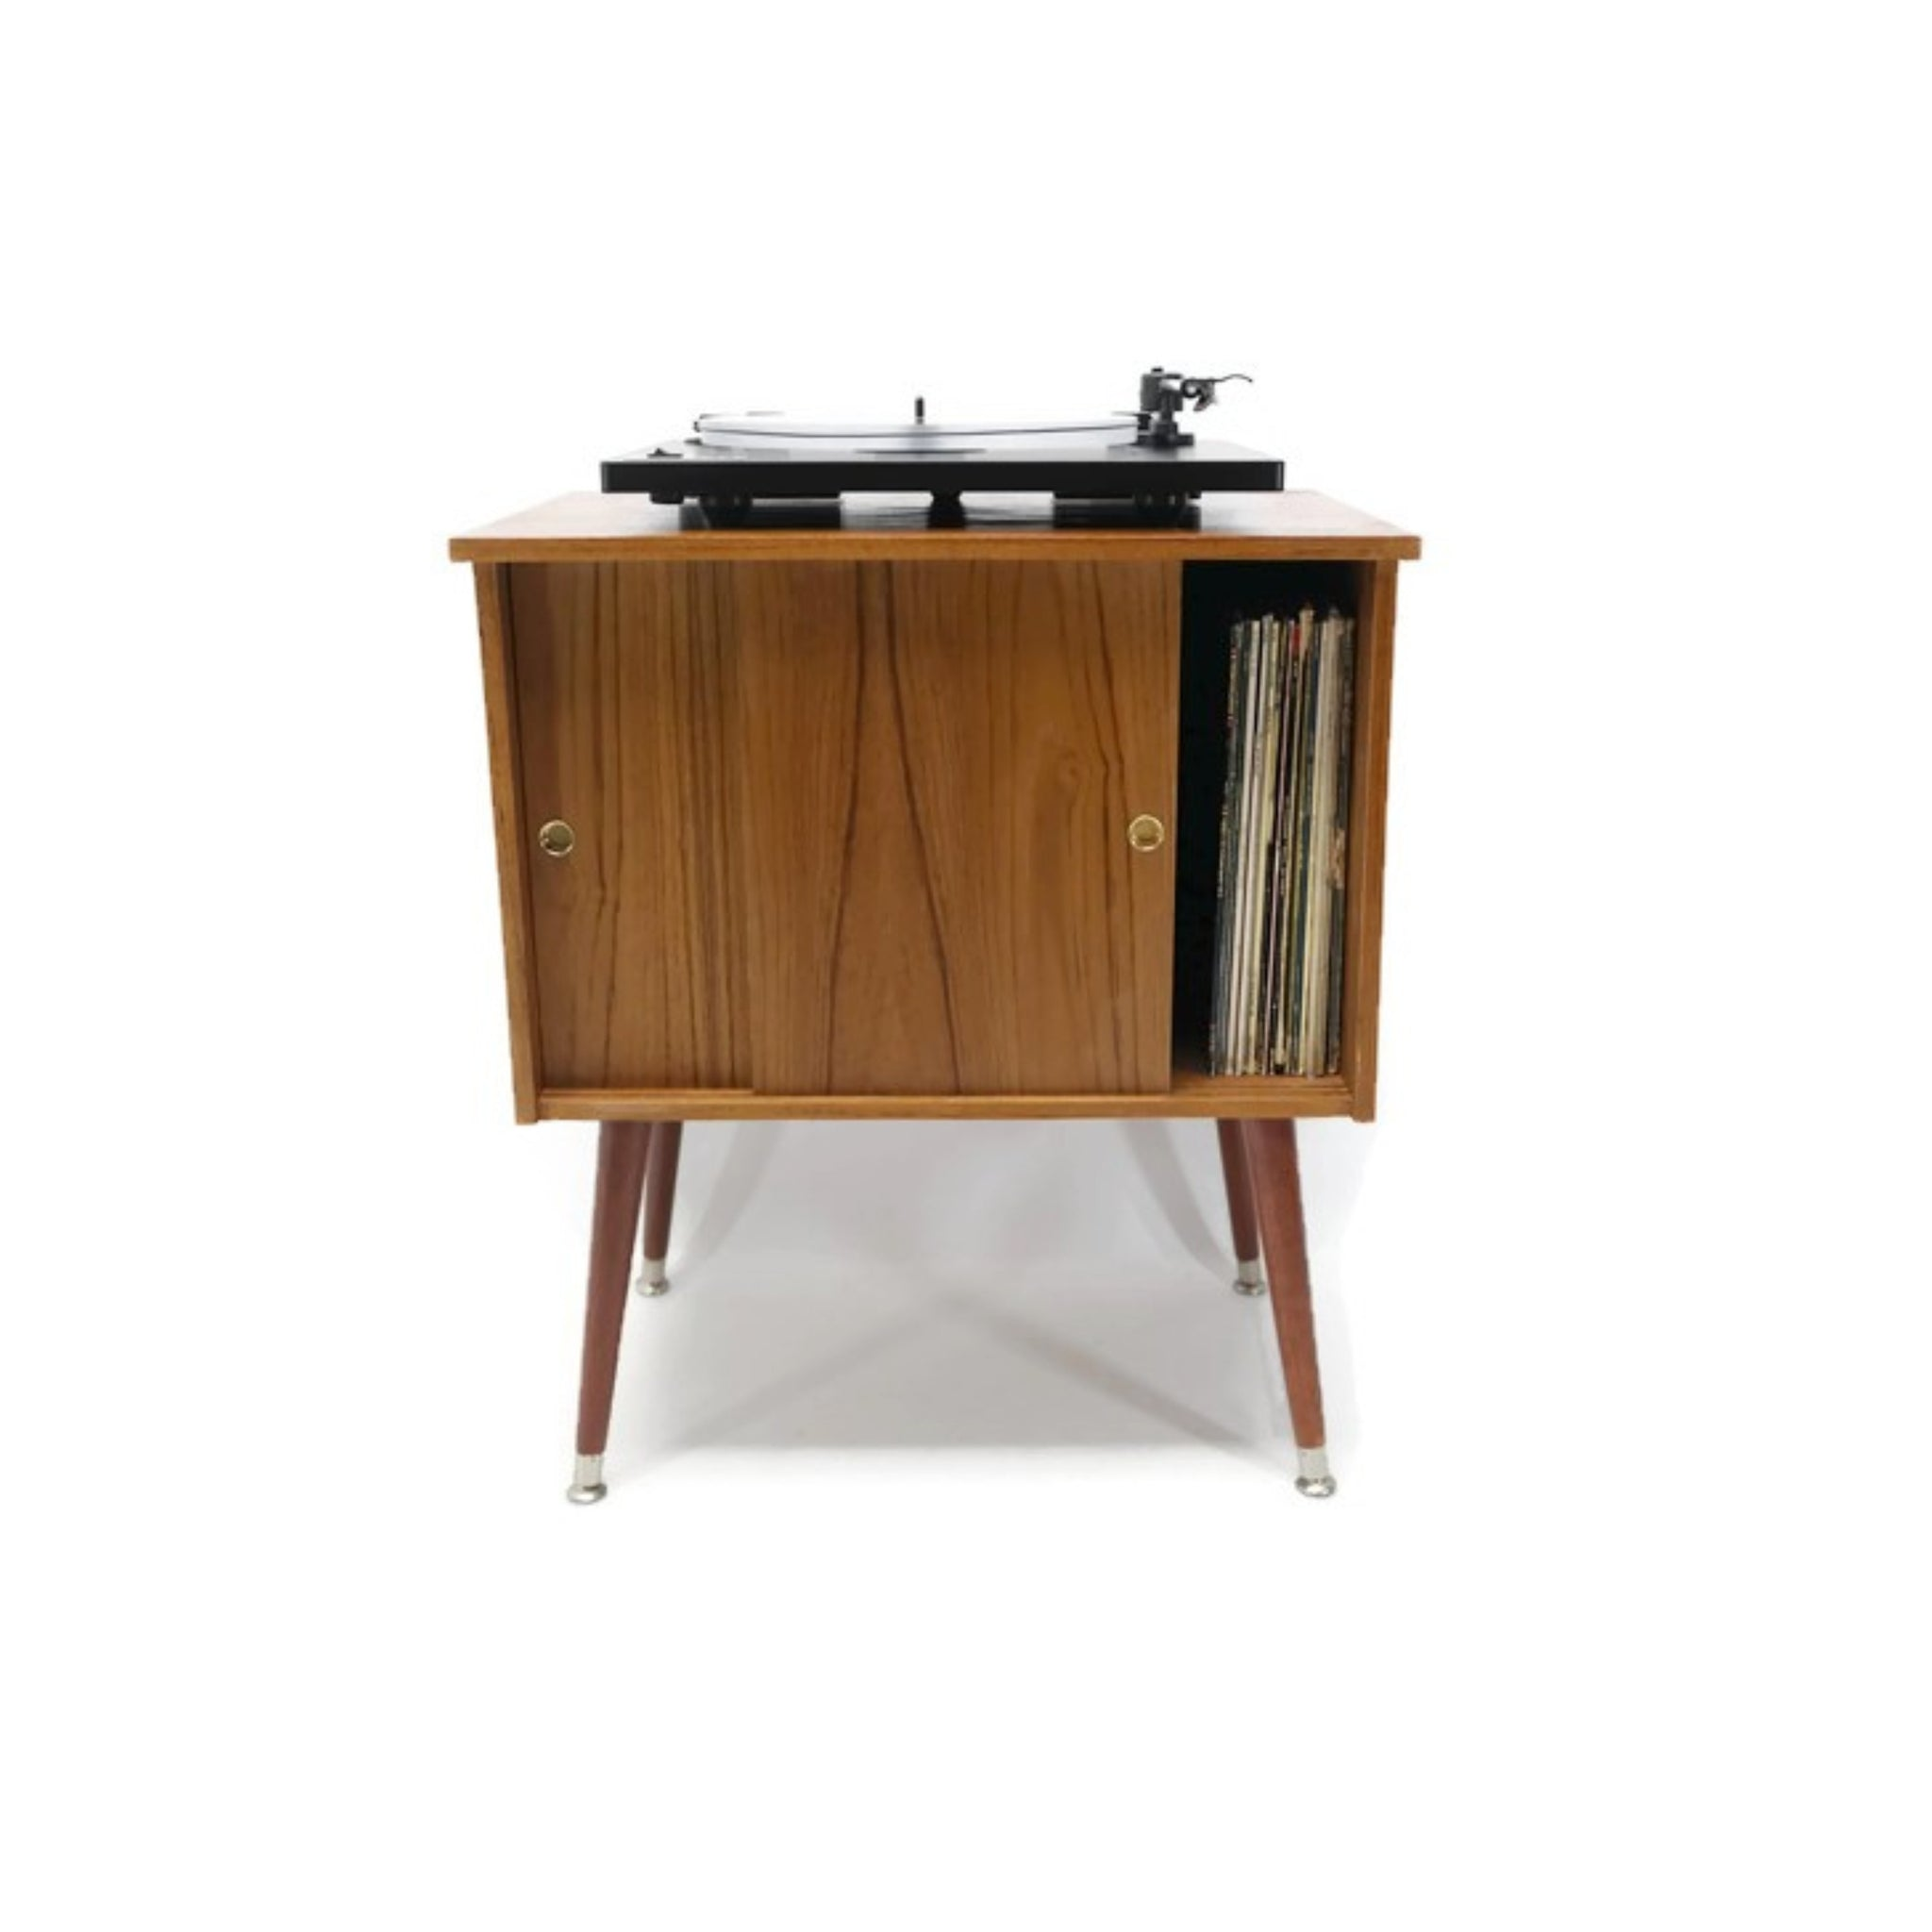 Ordinaire **SOLD OUT** The Vintedge Co™ Retro Record Player Stand LP Storage